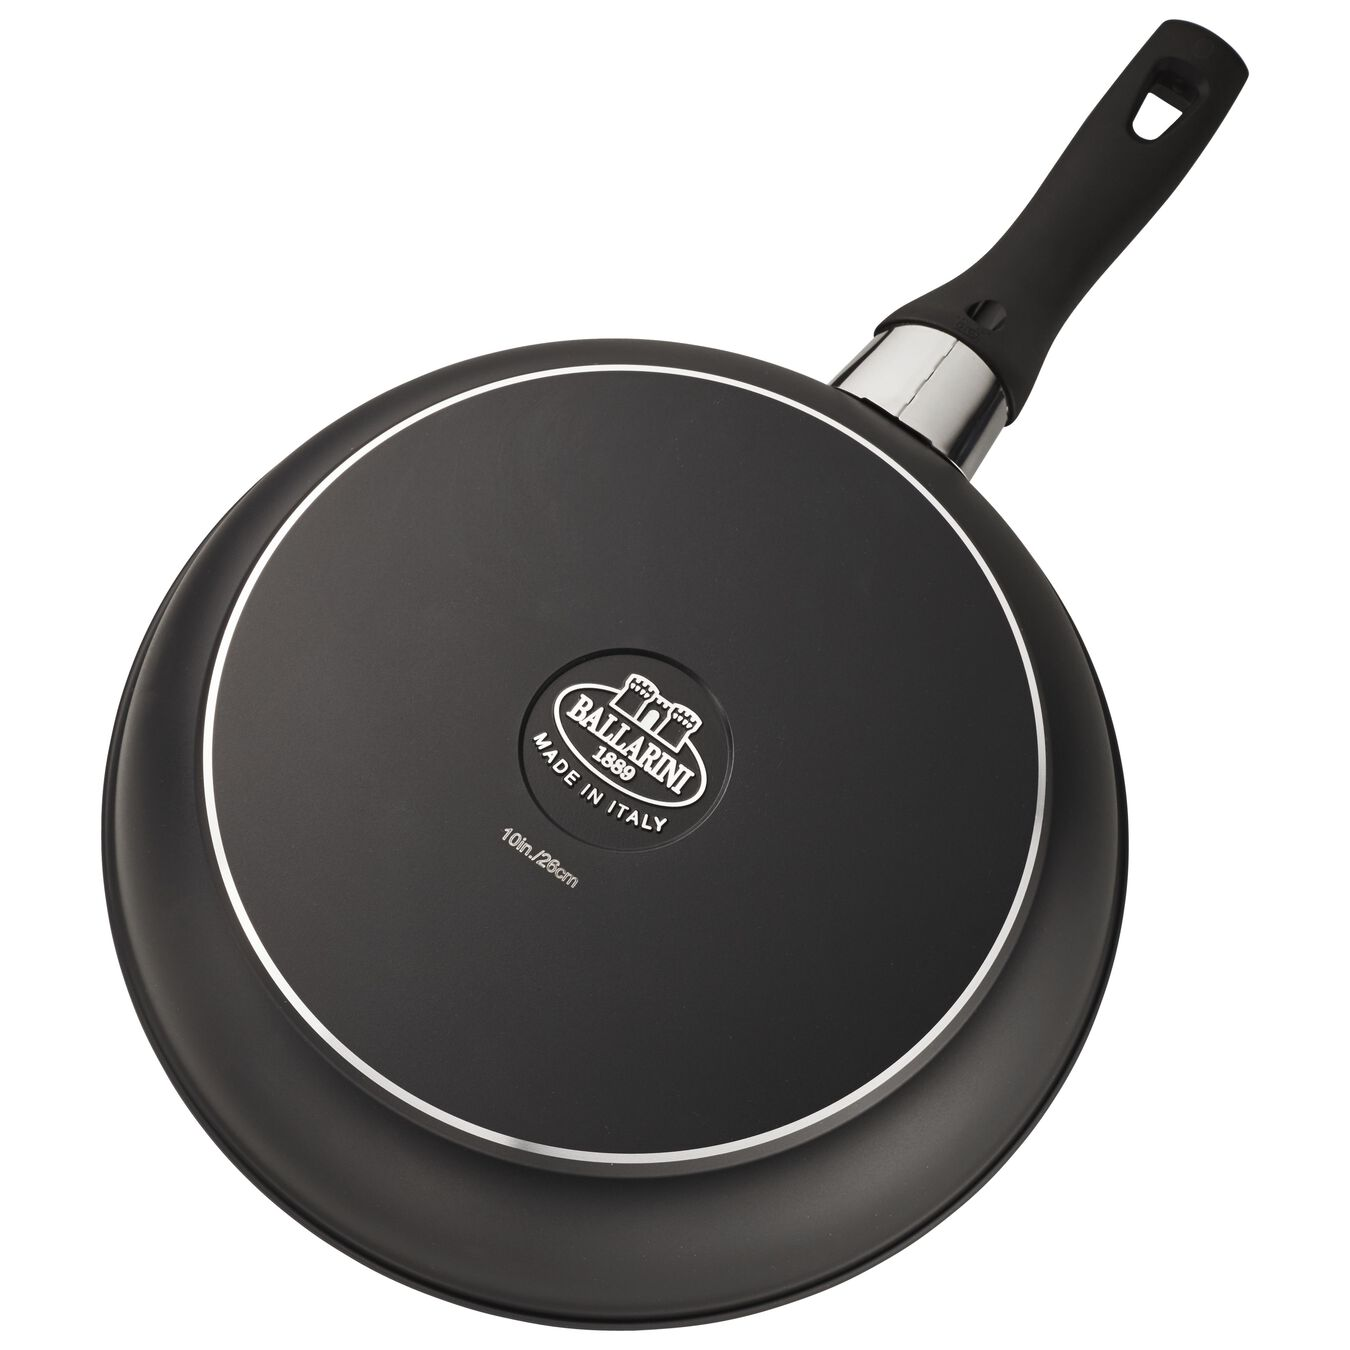 10-inch Nonstick Fry Pan,,large 3